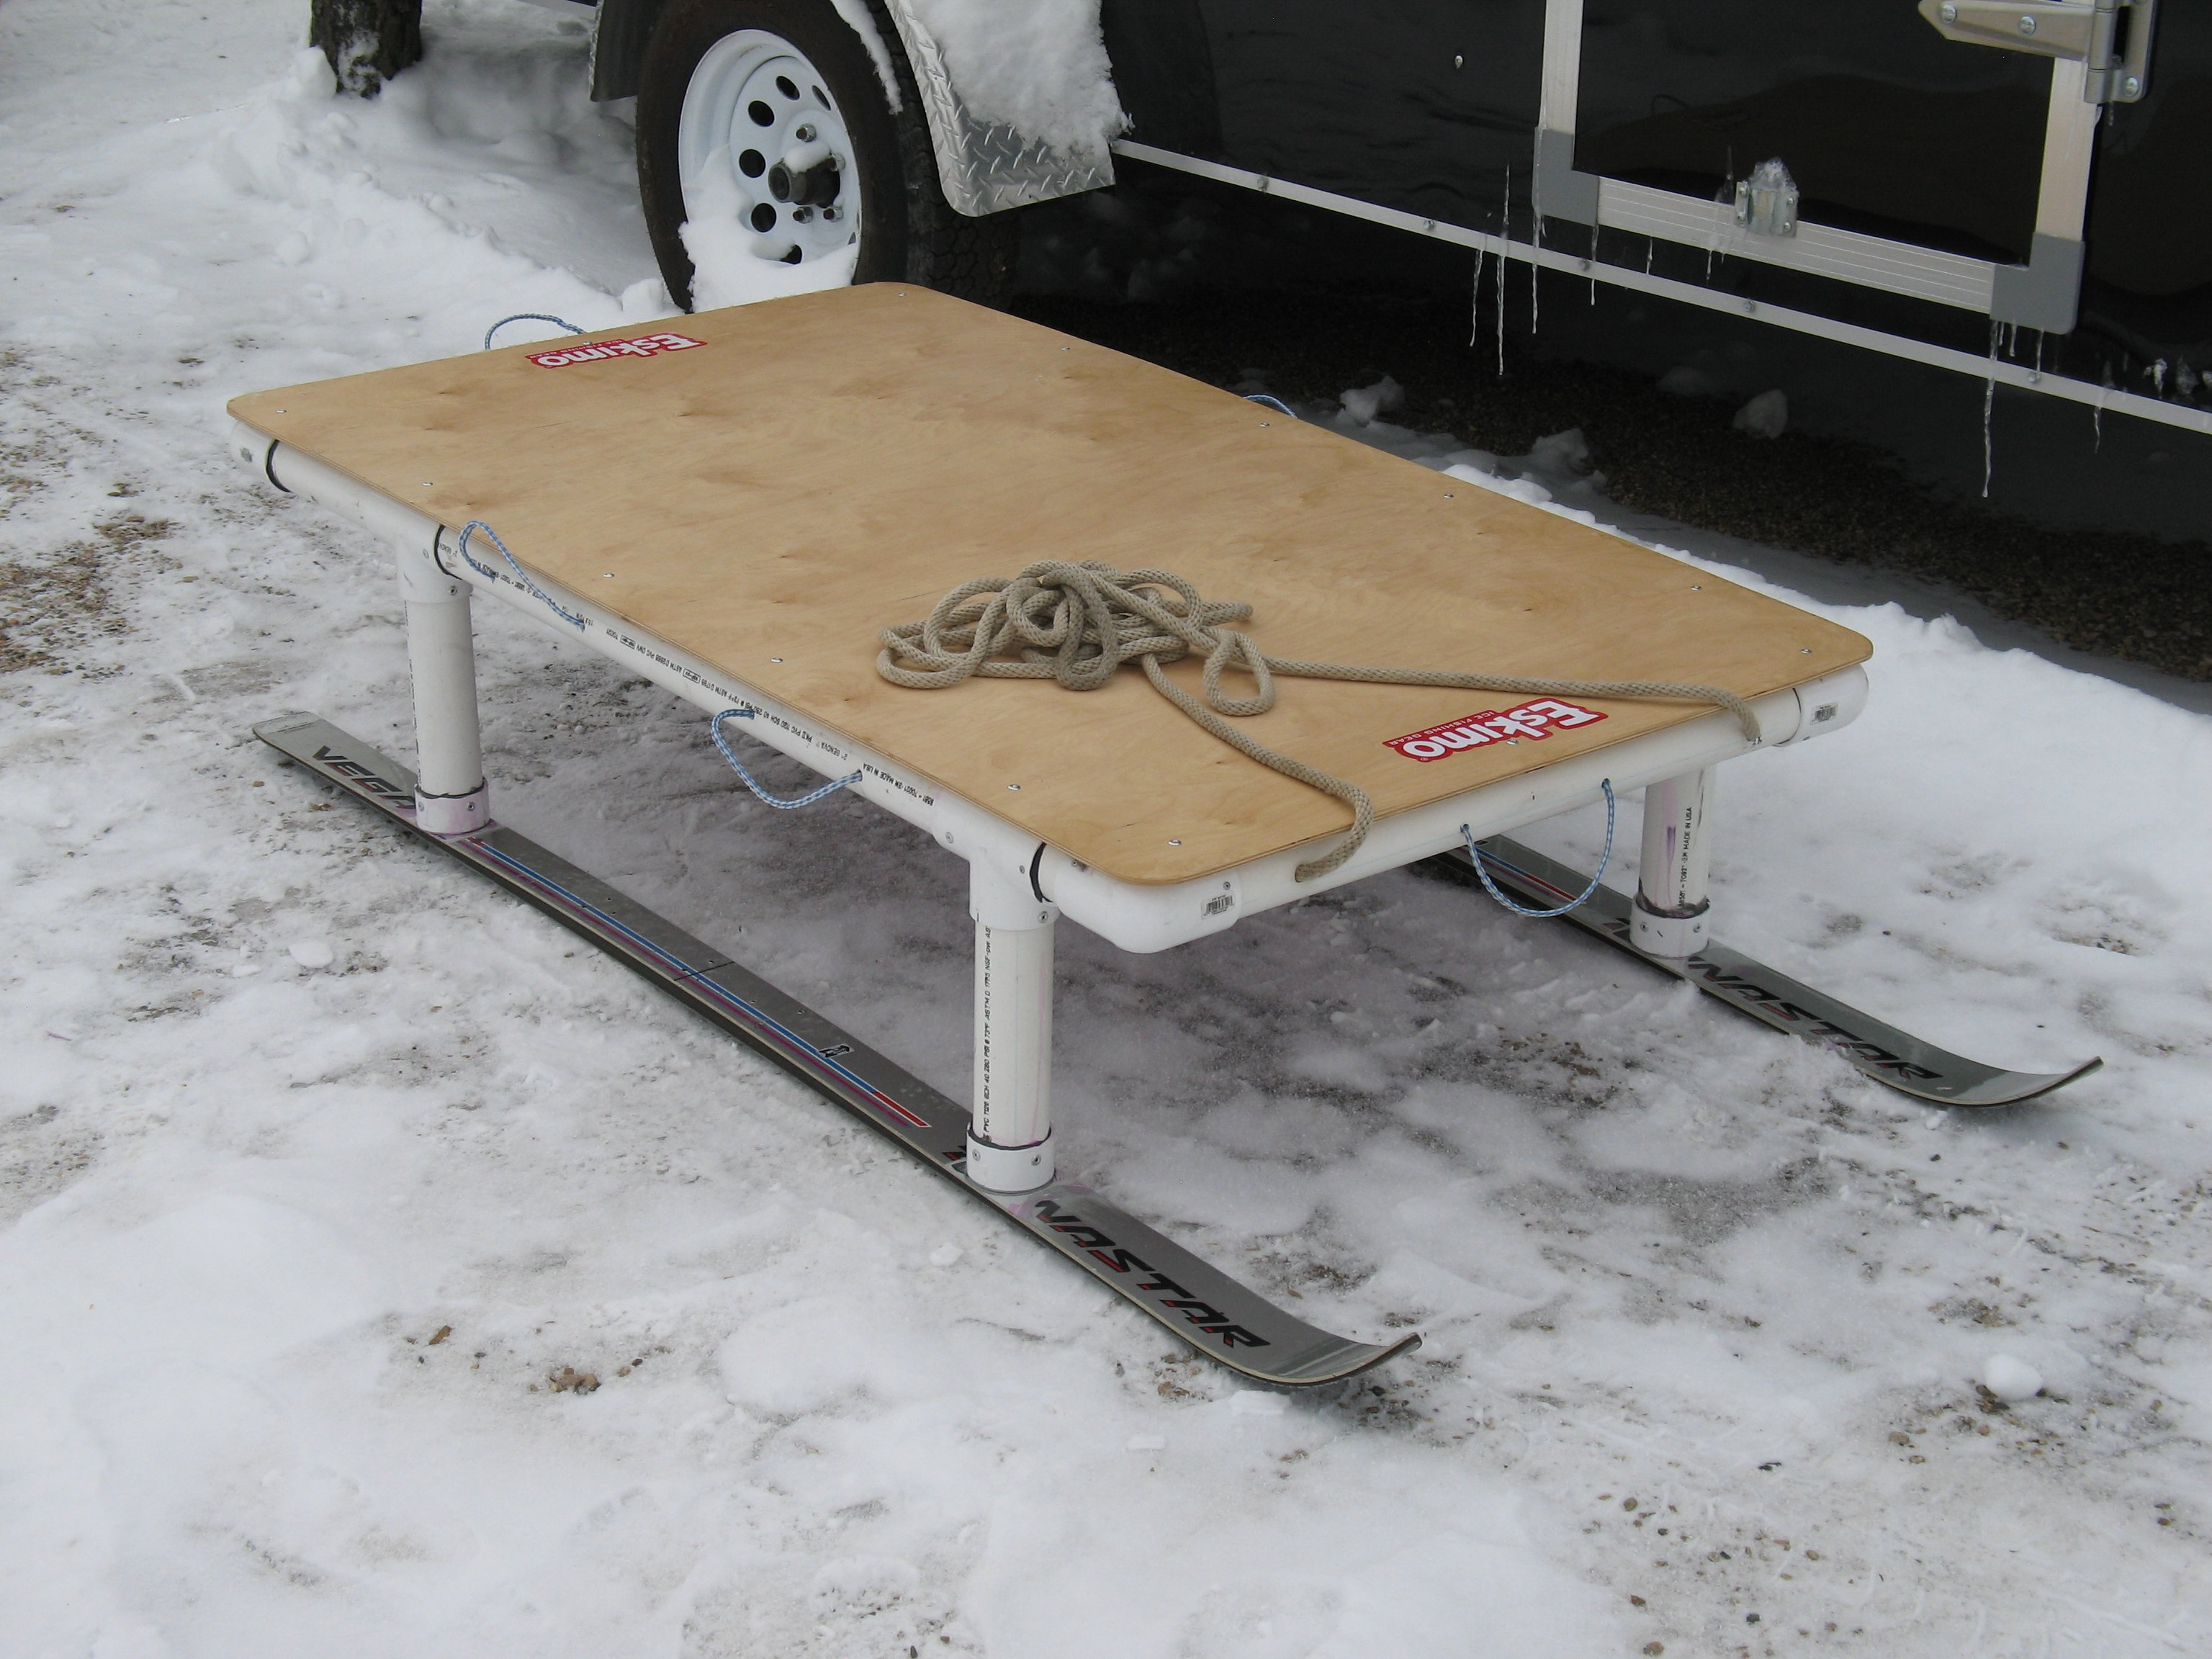 Smitty sleds ice fishing forum in depth outdoors for Ice fishing sleds